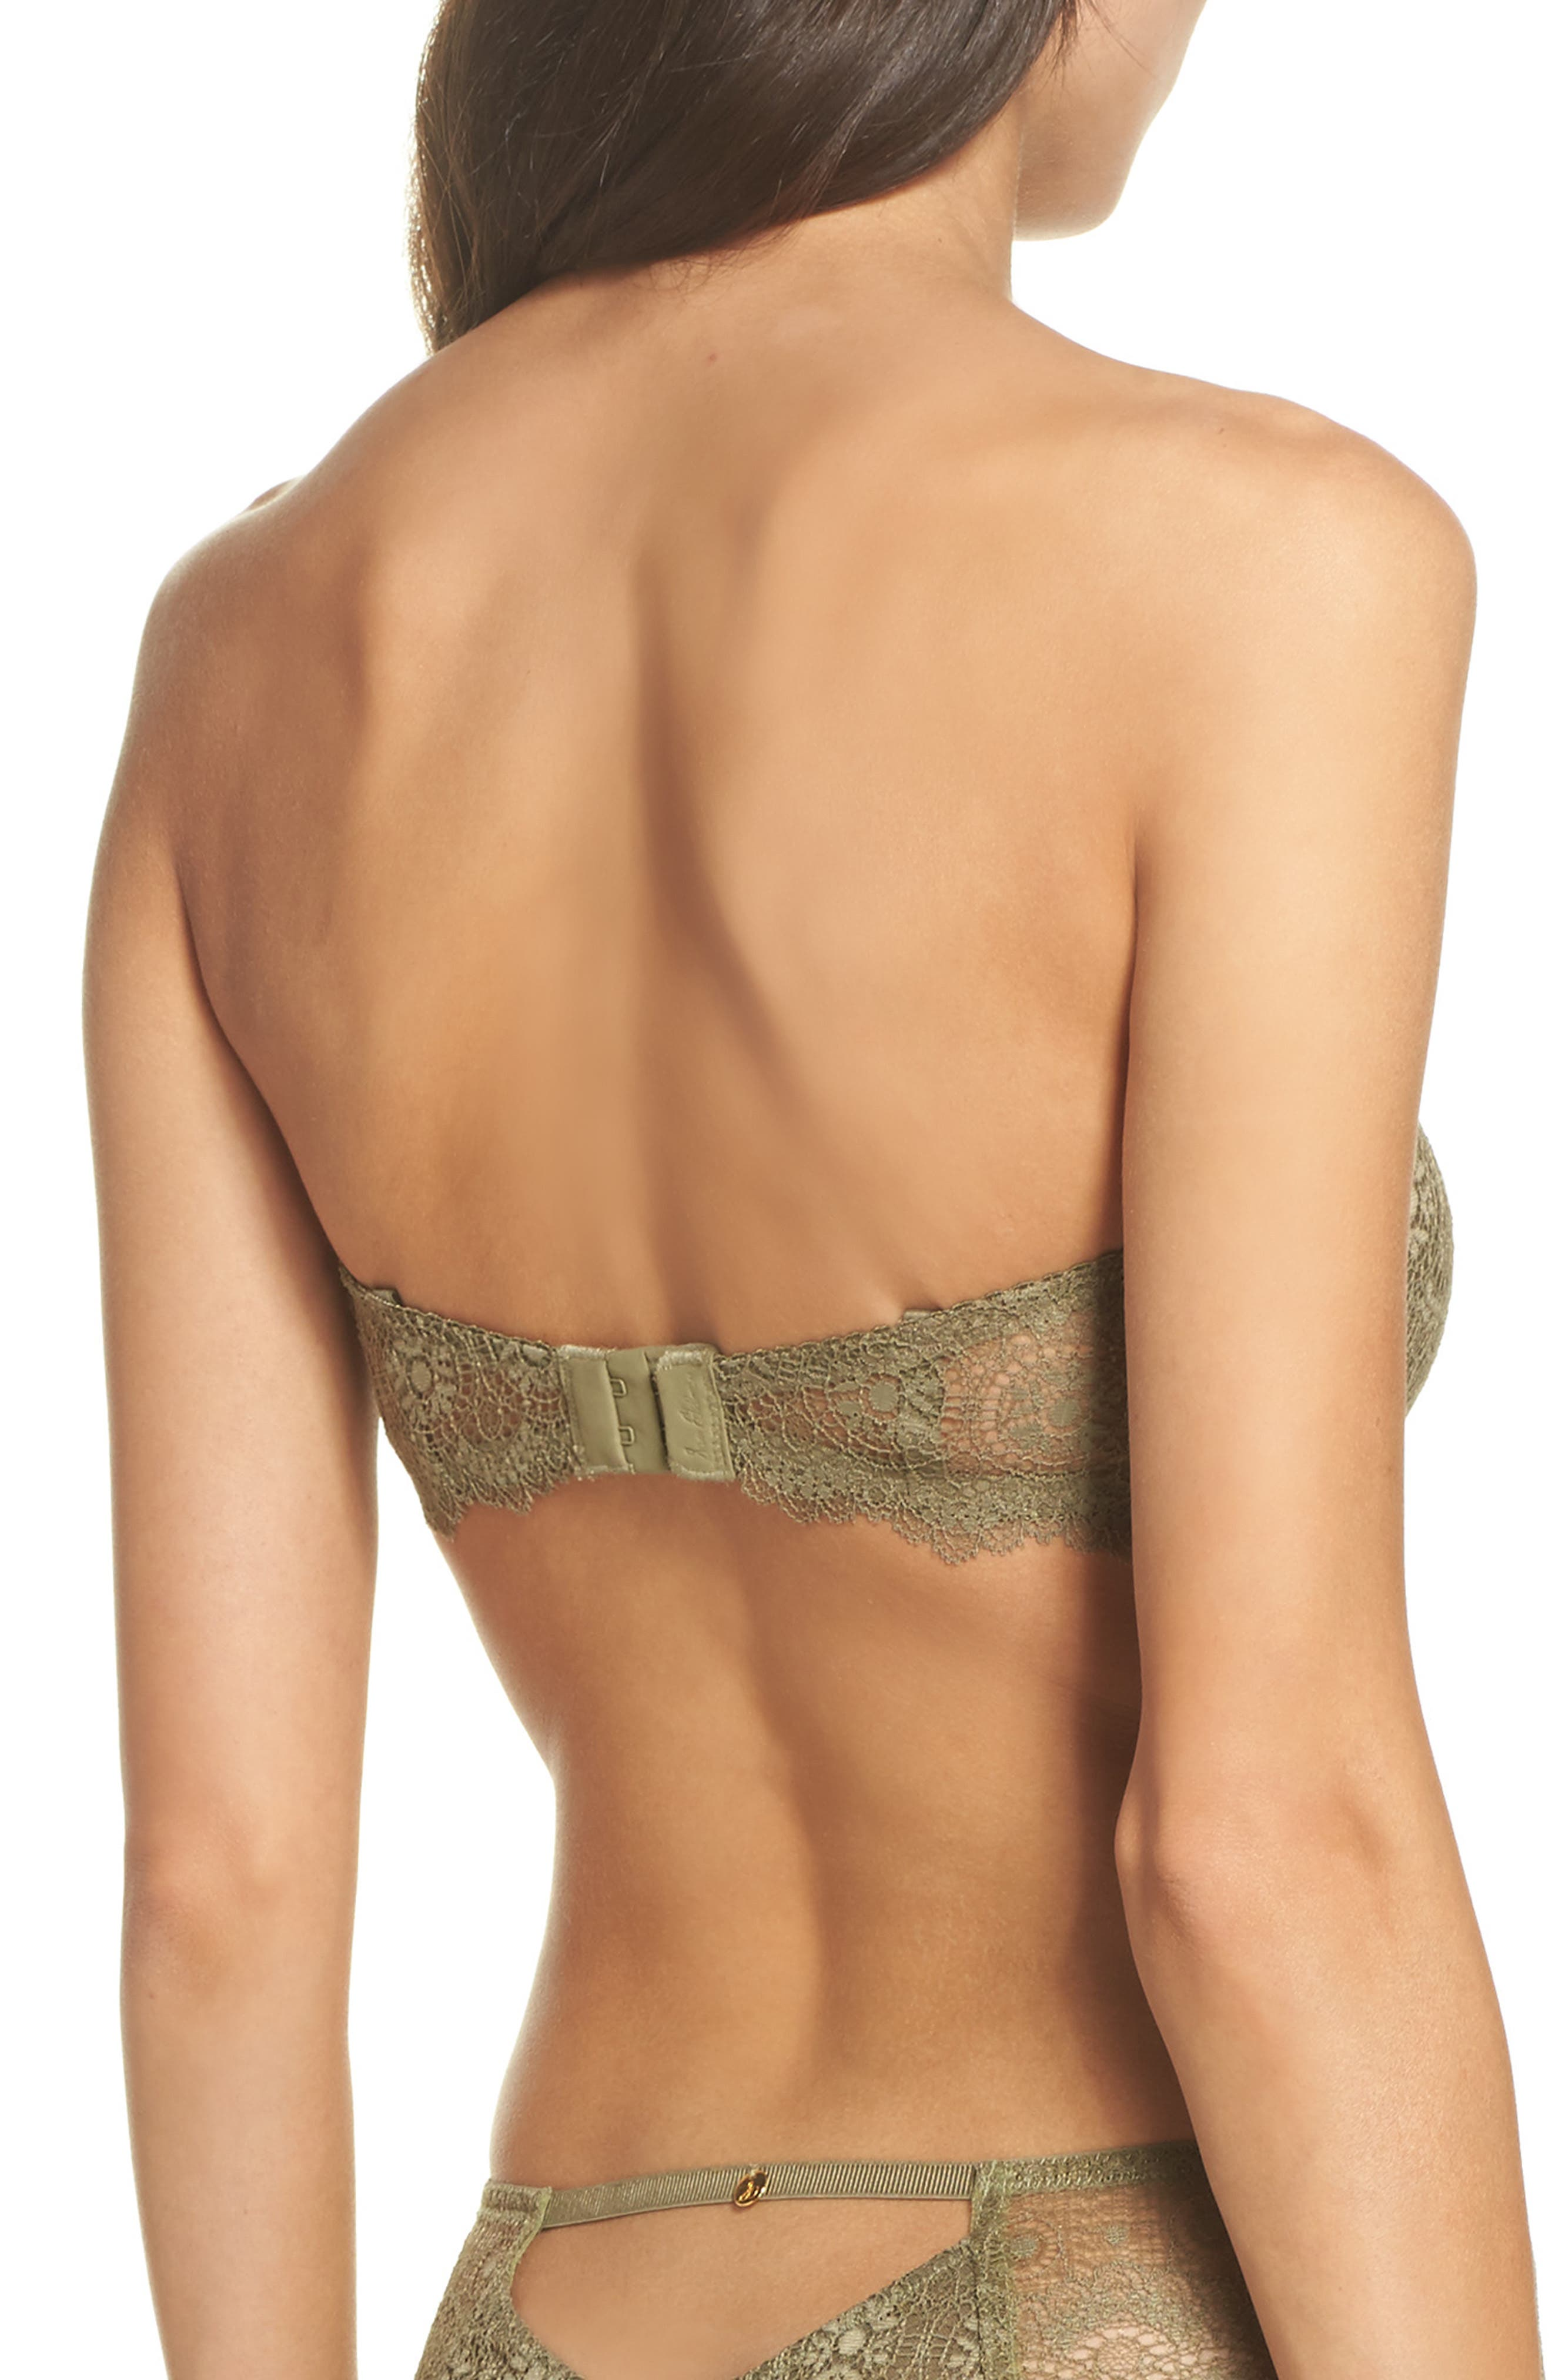 Strapless Underwire Lace Bra,                             Alternate thumbnail 2, color,                             Mermaid